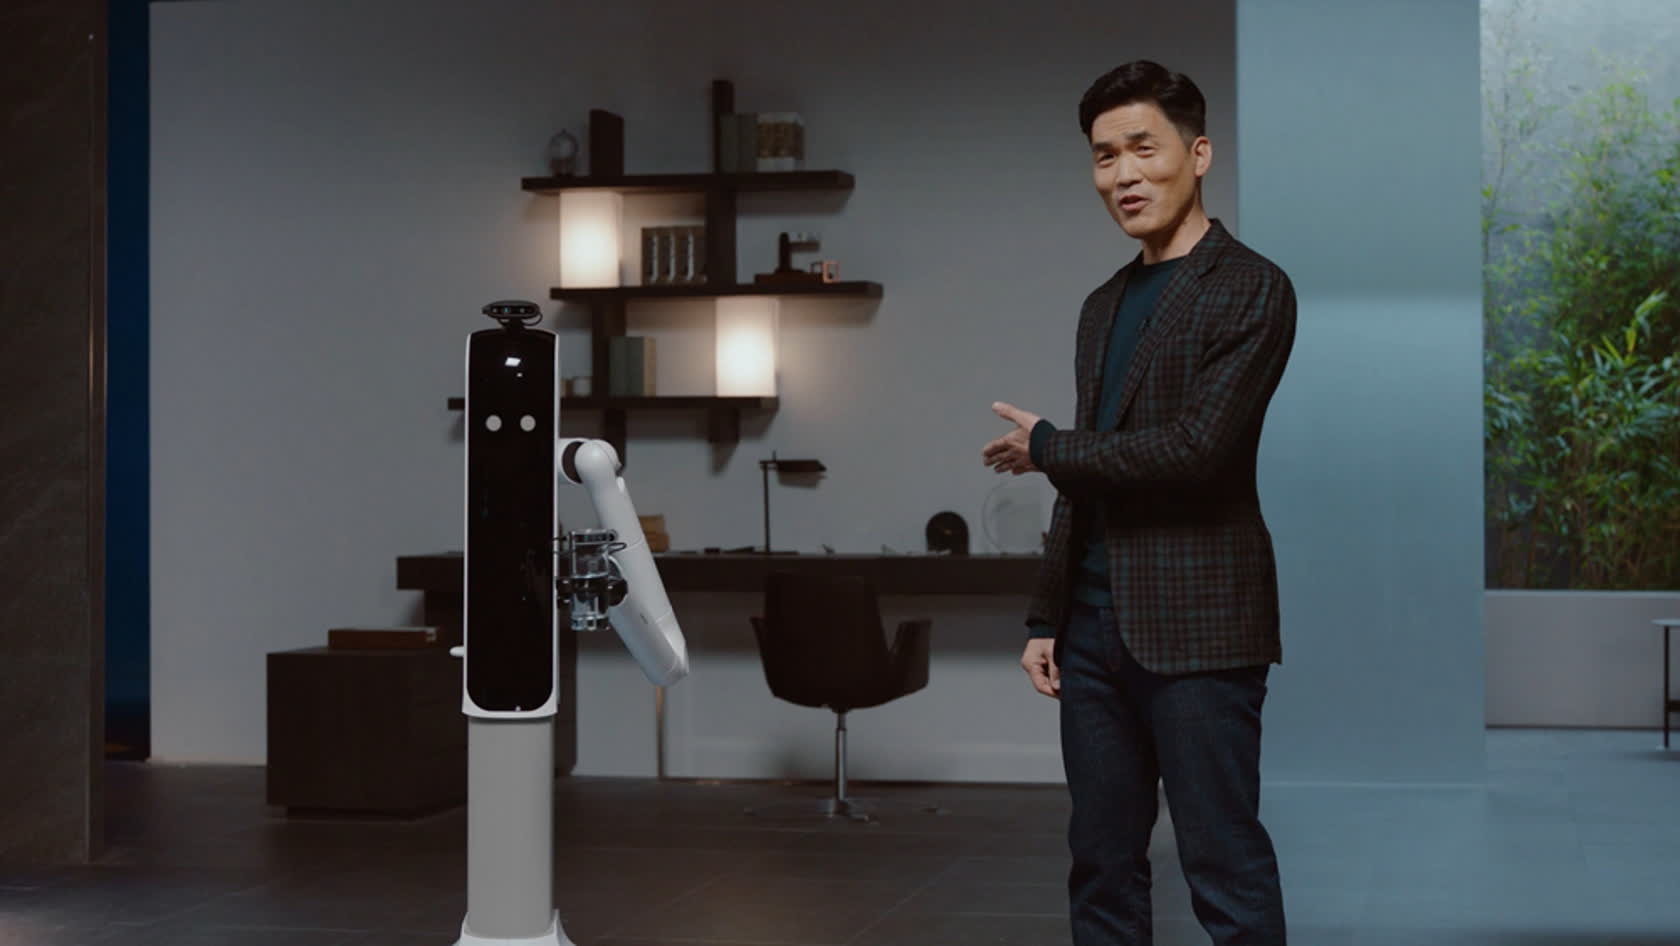 Samsung's 'Bot Handy' can put away dishes, set a table, and pour drinks for you